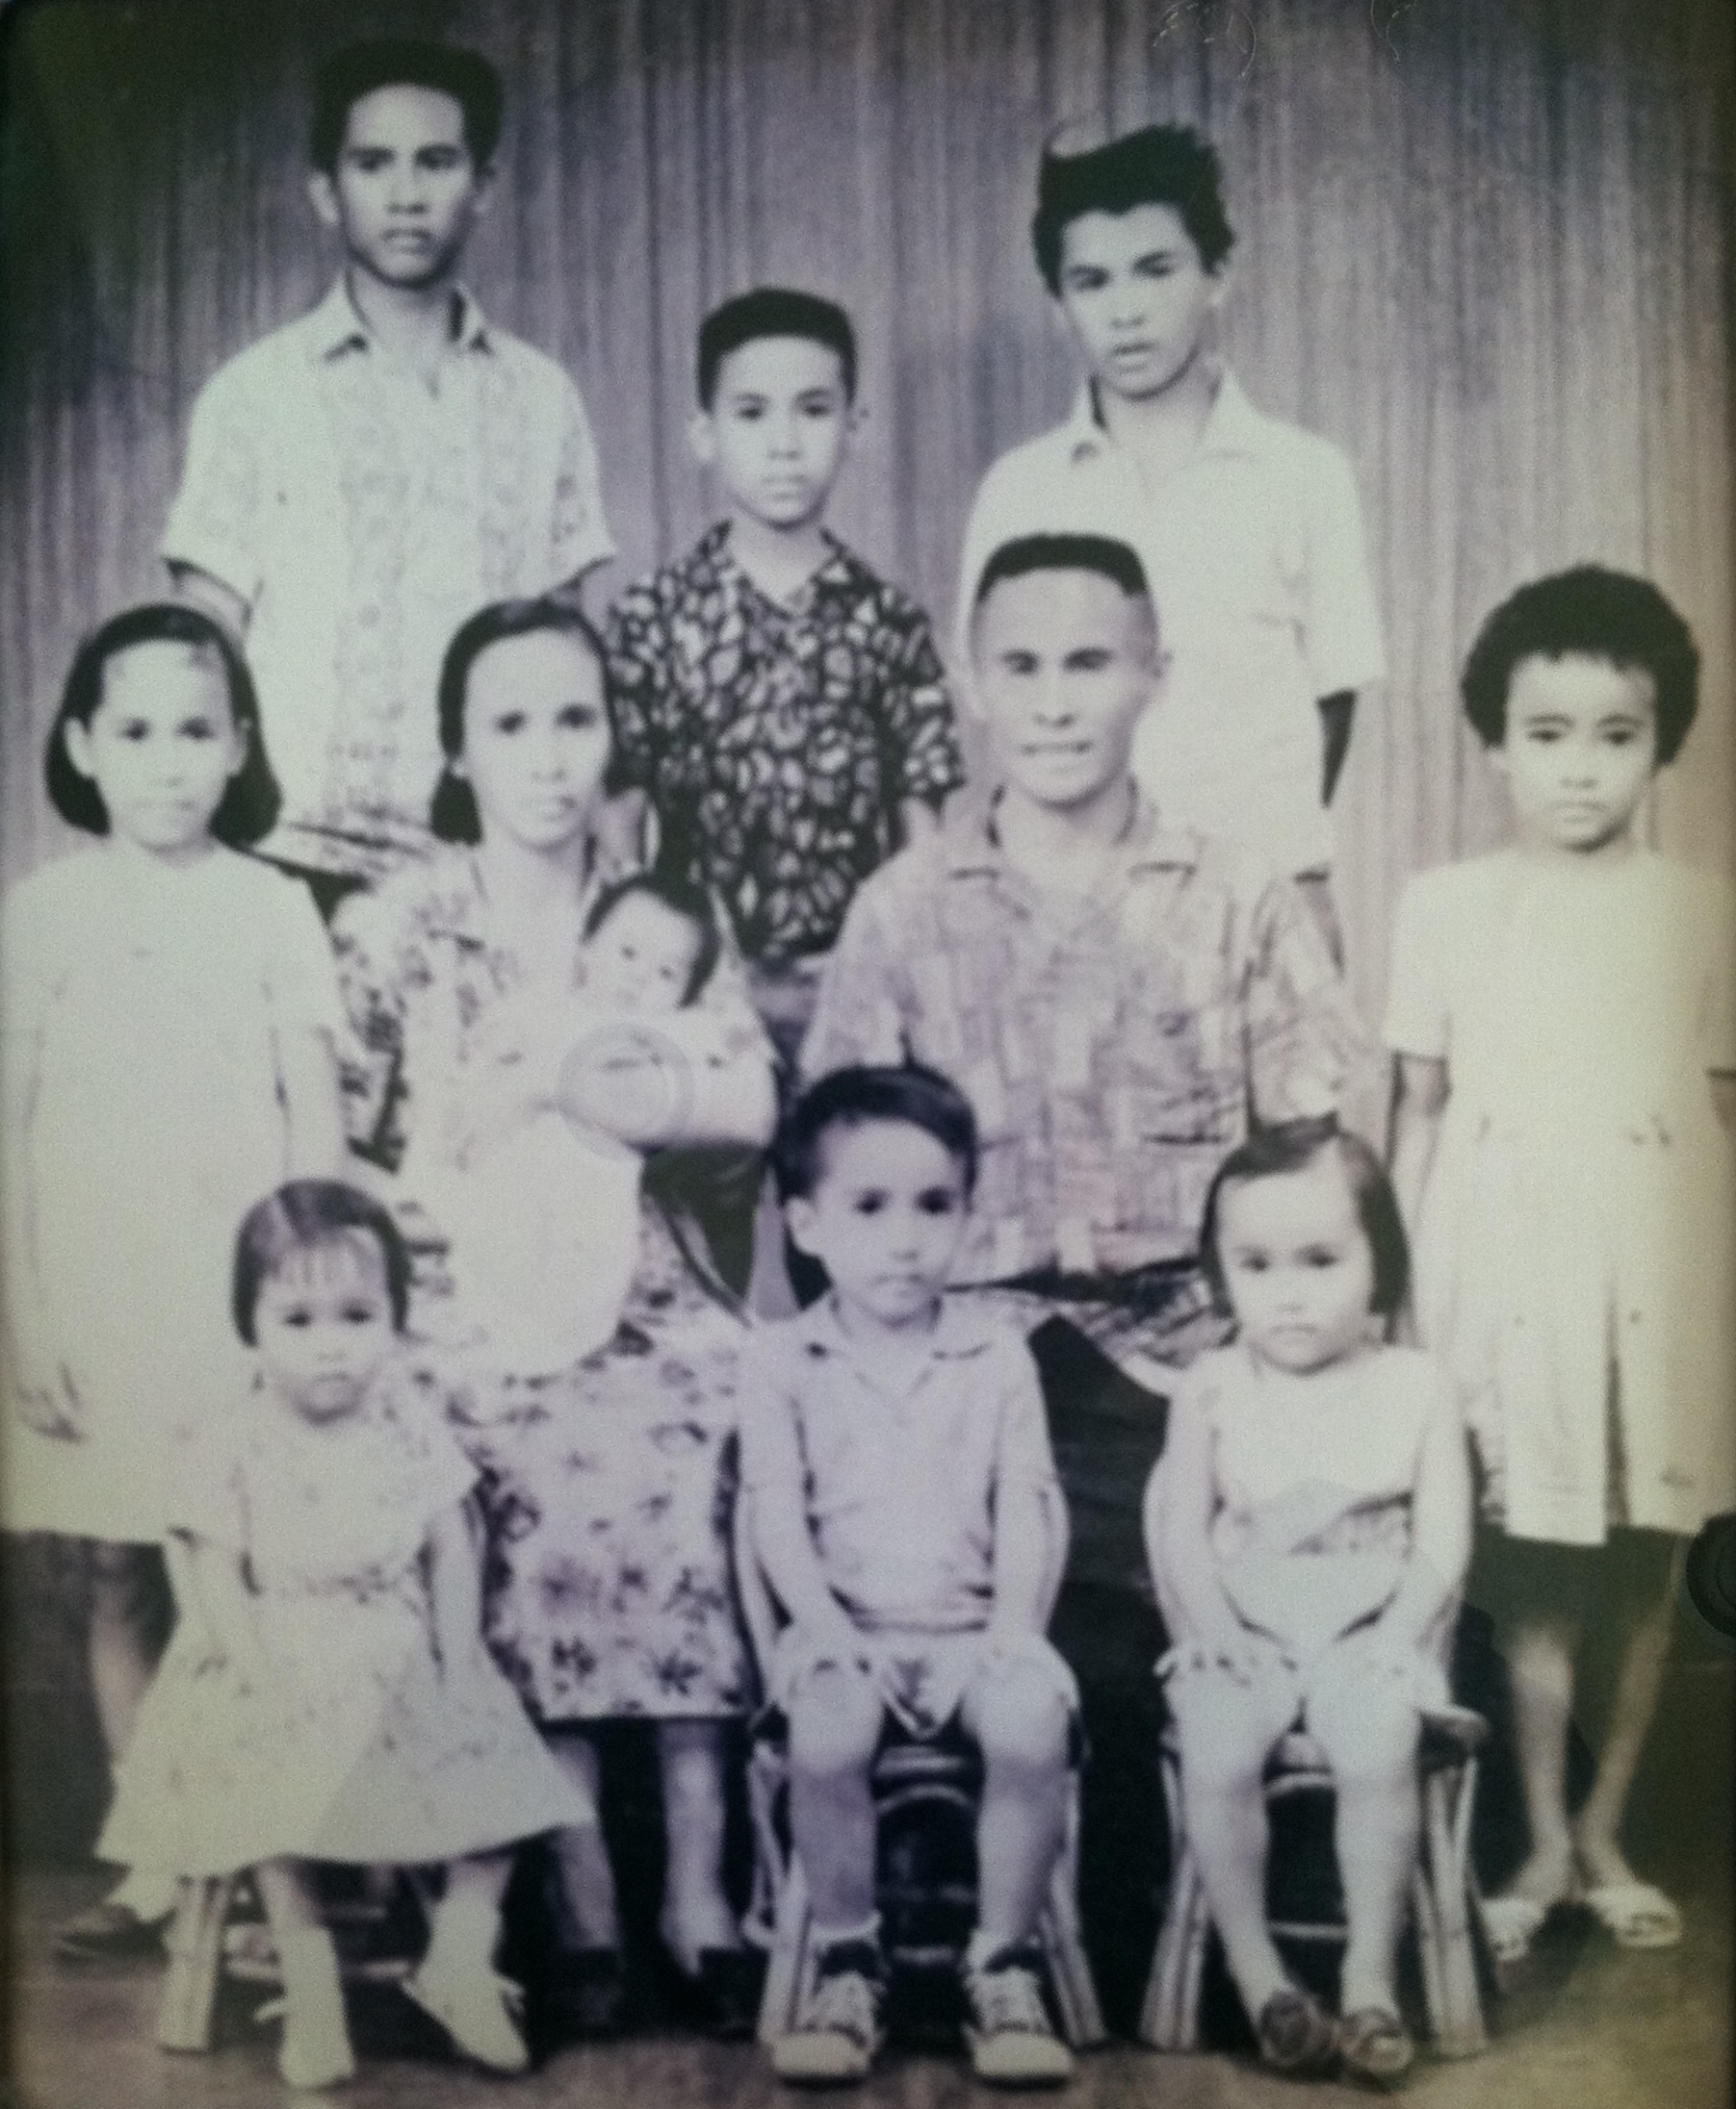 Abel, Thecla and their children.